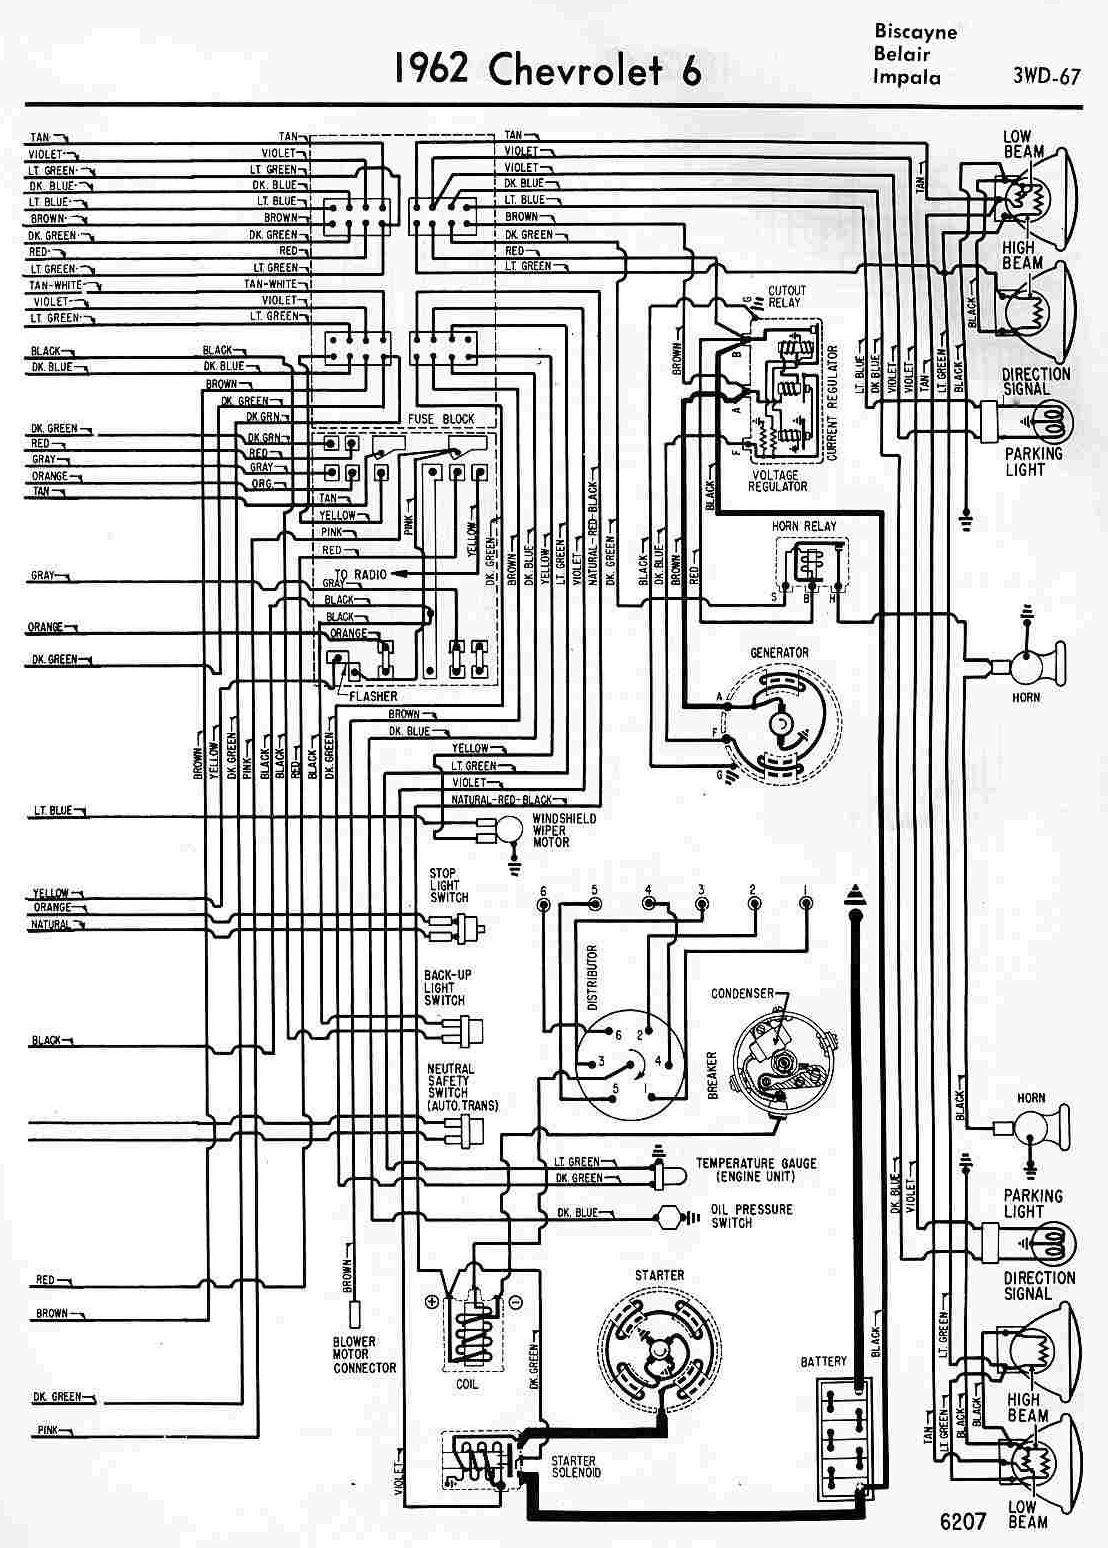 1962+Chevrolet+6+Biscayne%252C+Belair+and+Impala+Wiring+Diagram 2011 all about wiring diagrams Air 1964 Bel at alyssarenee.co